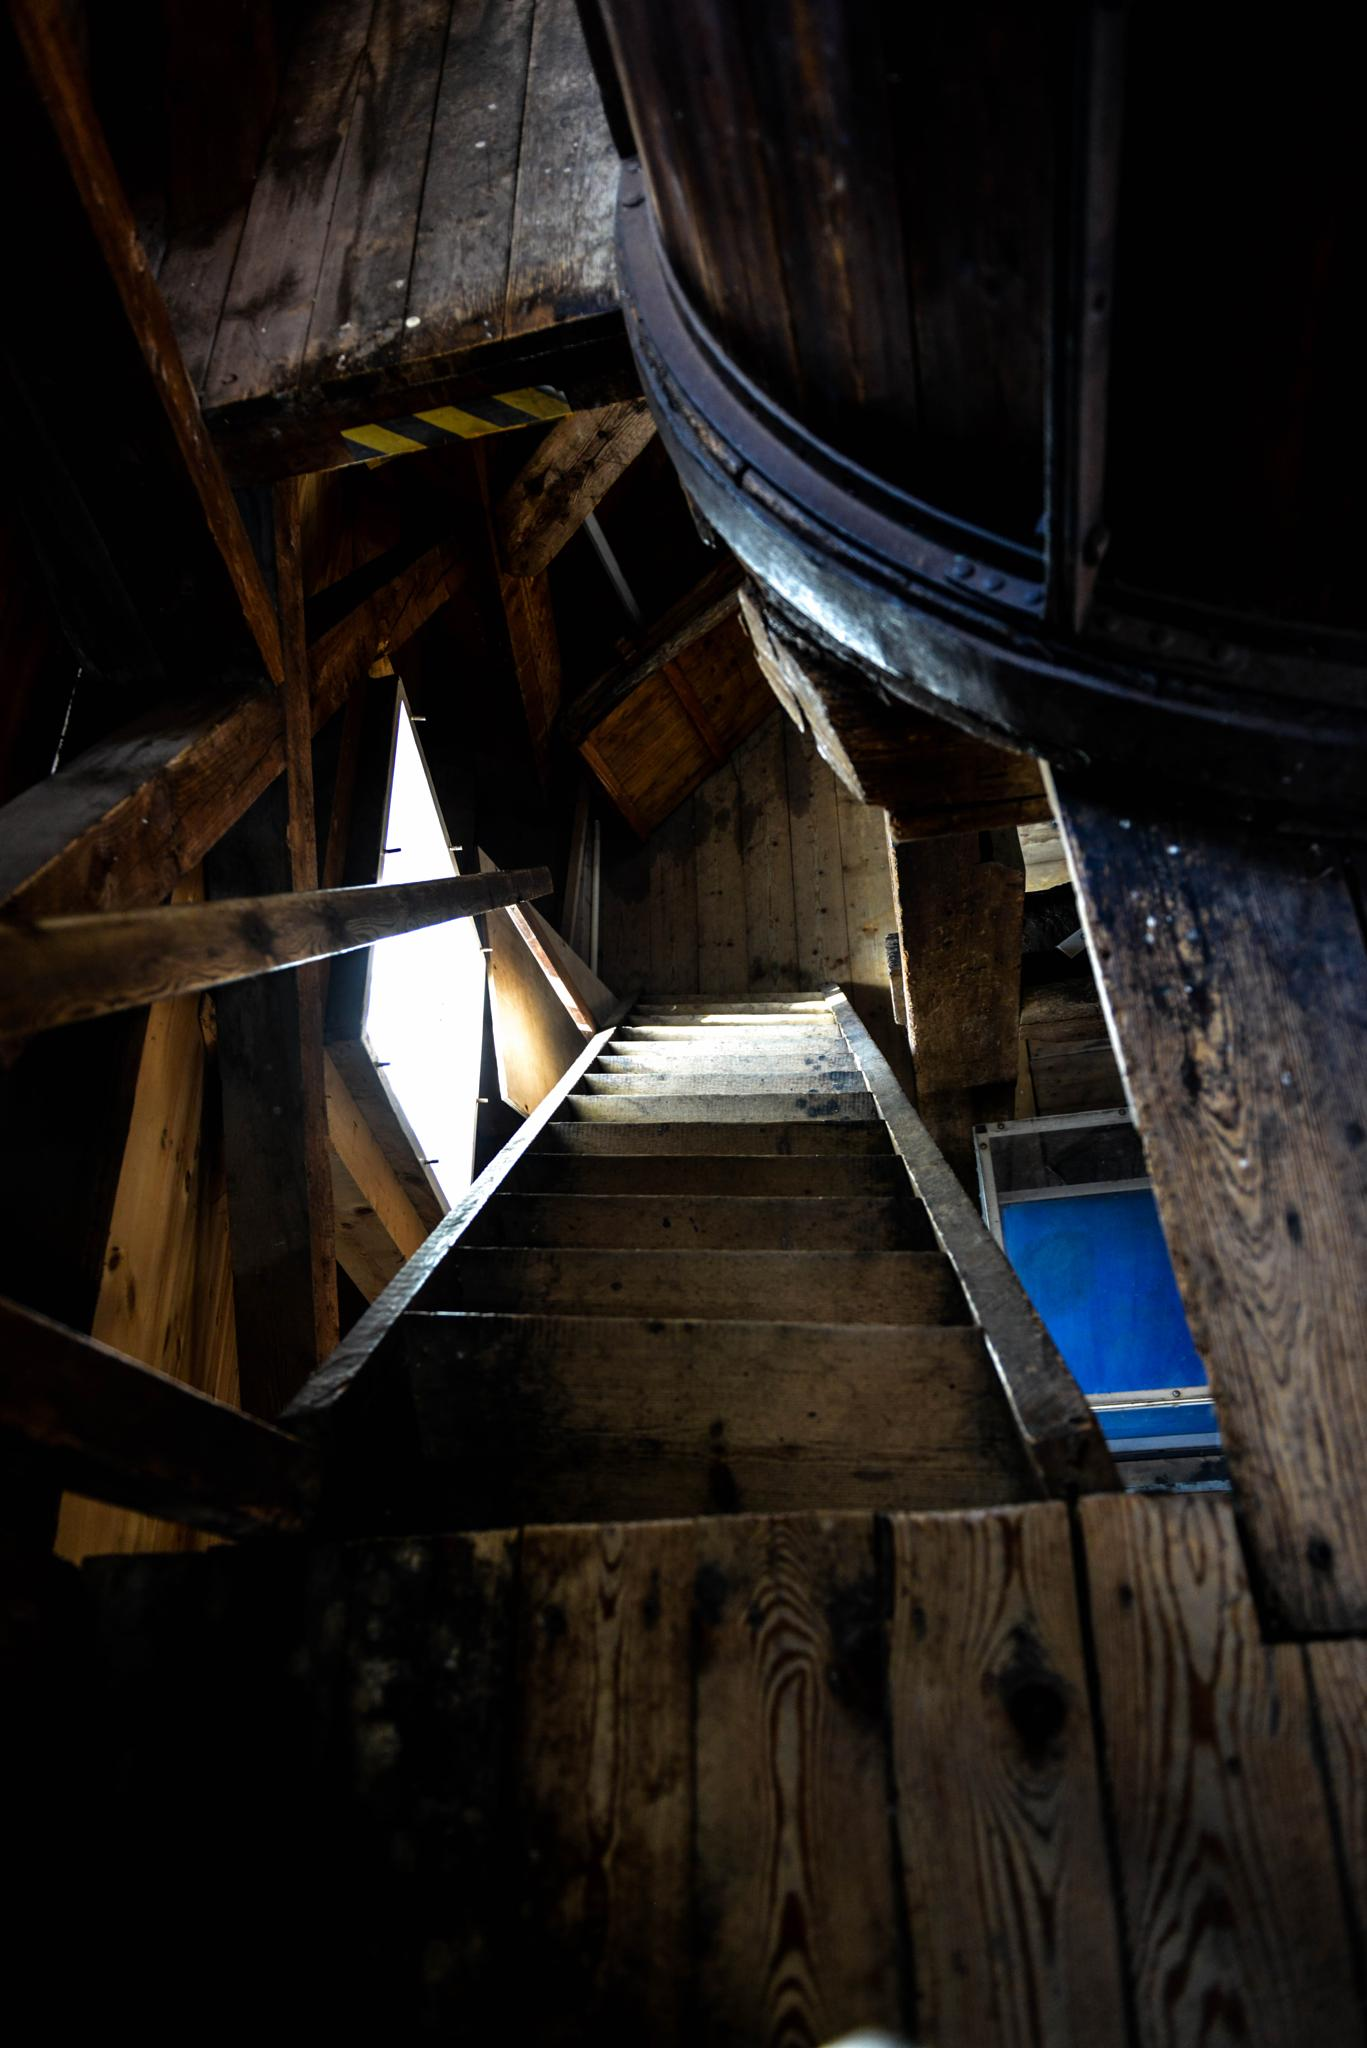 stair inside the mill by lars-goran6